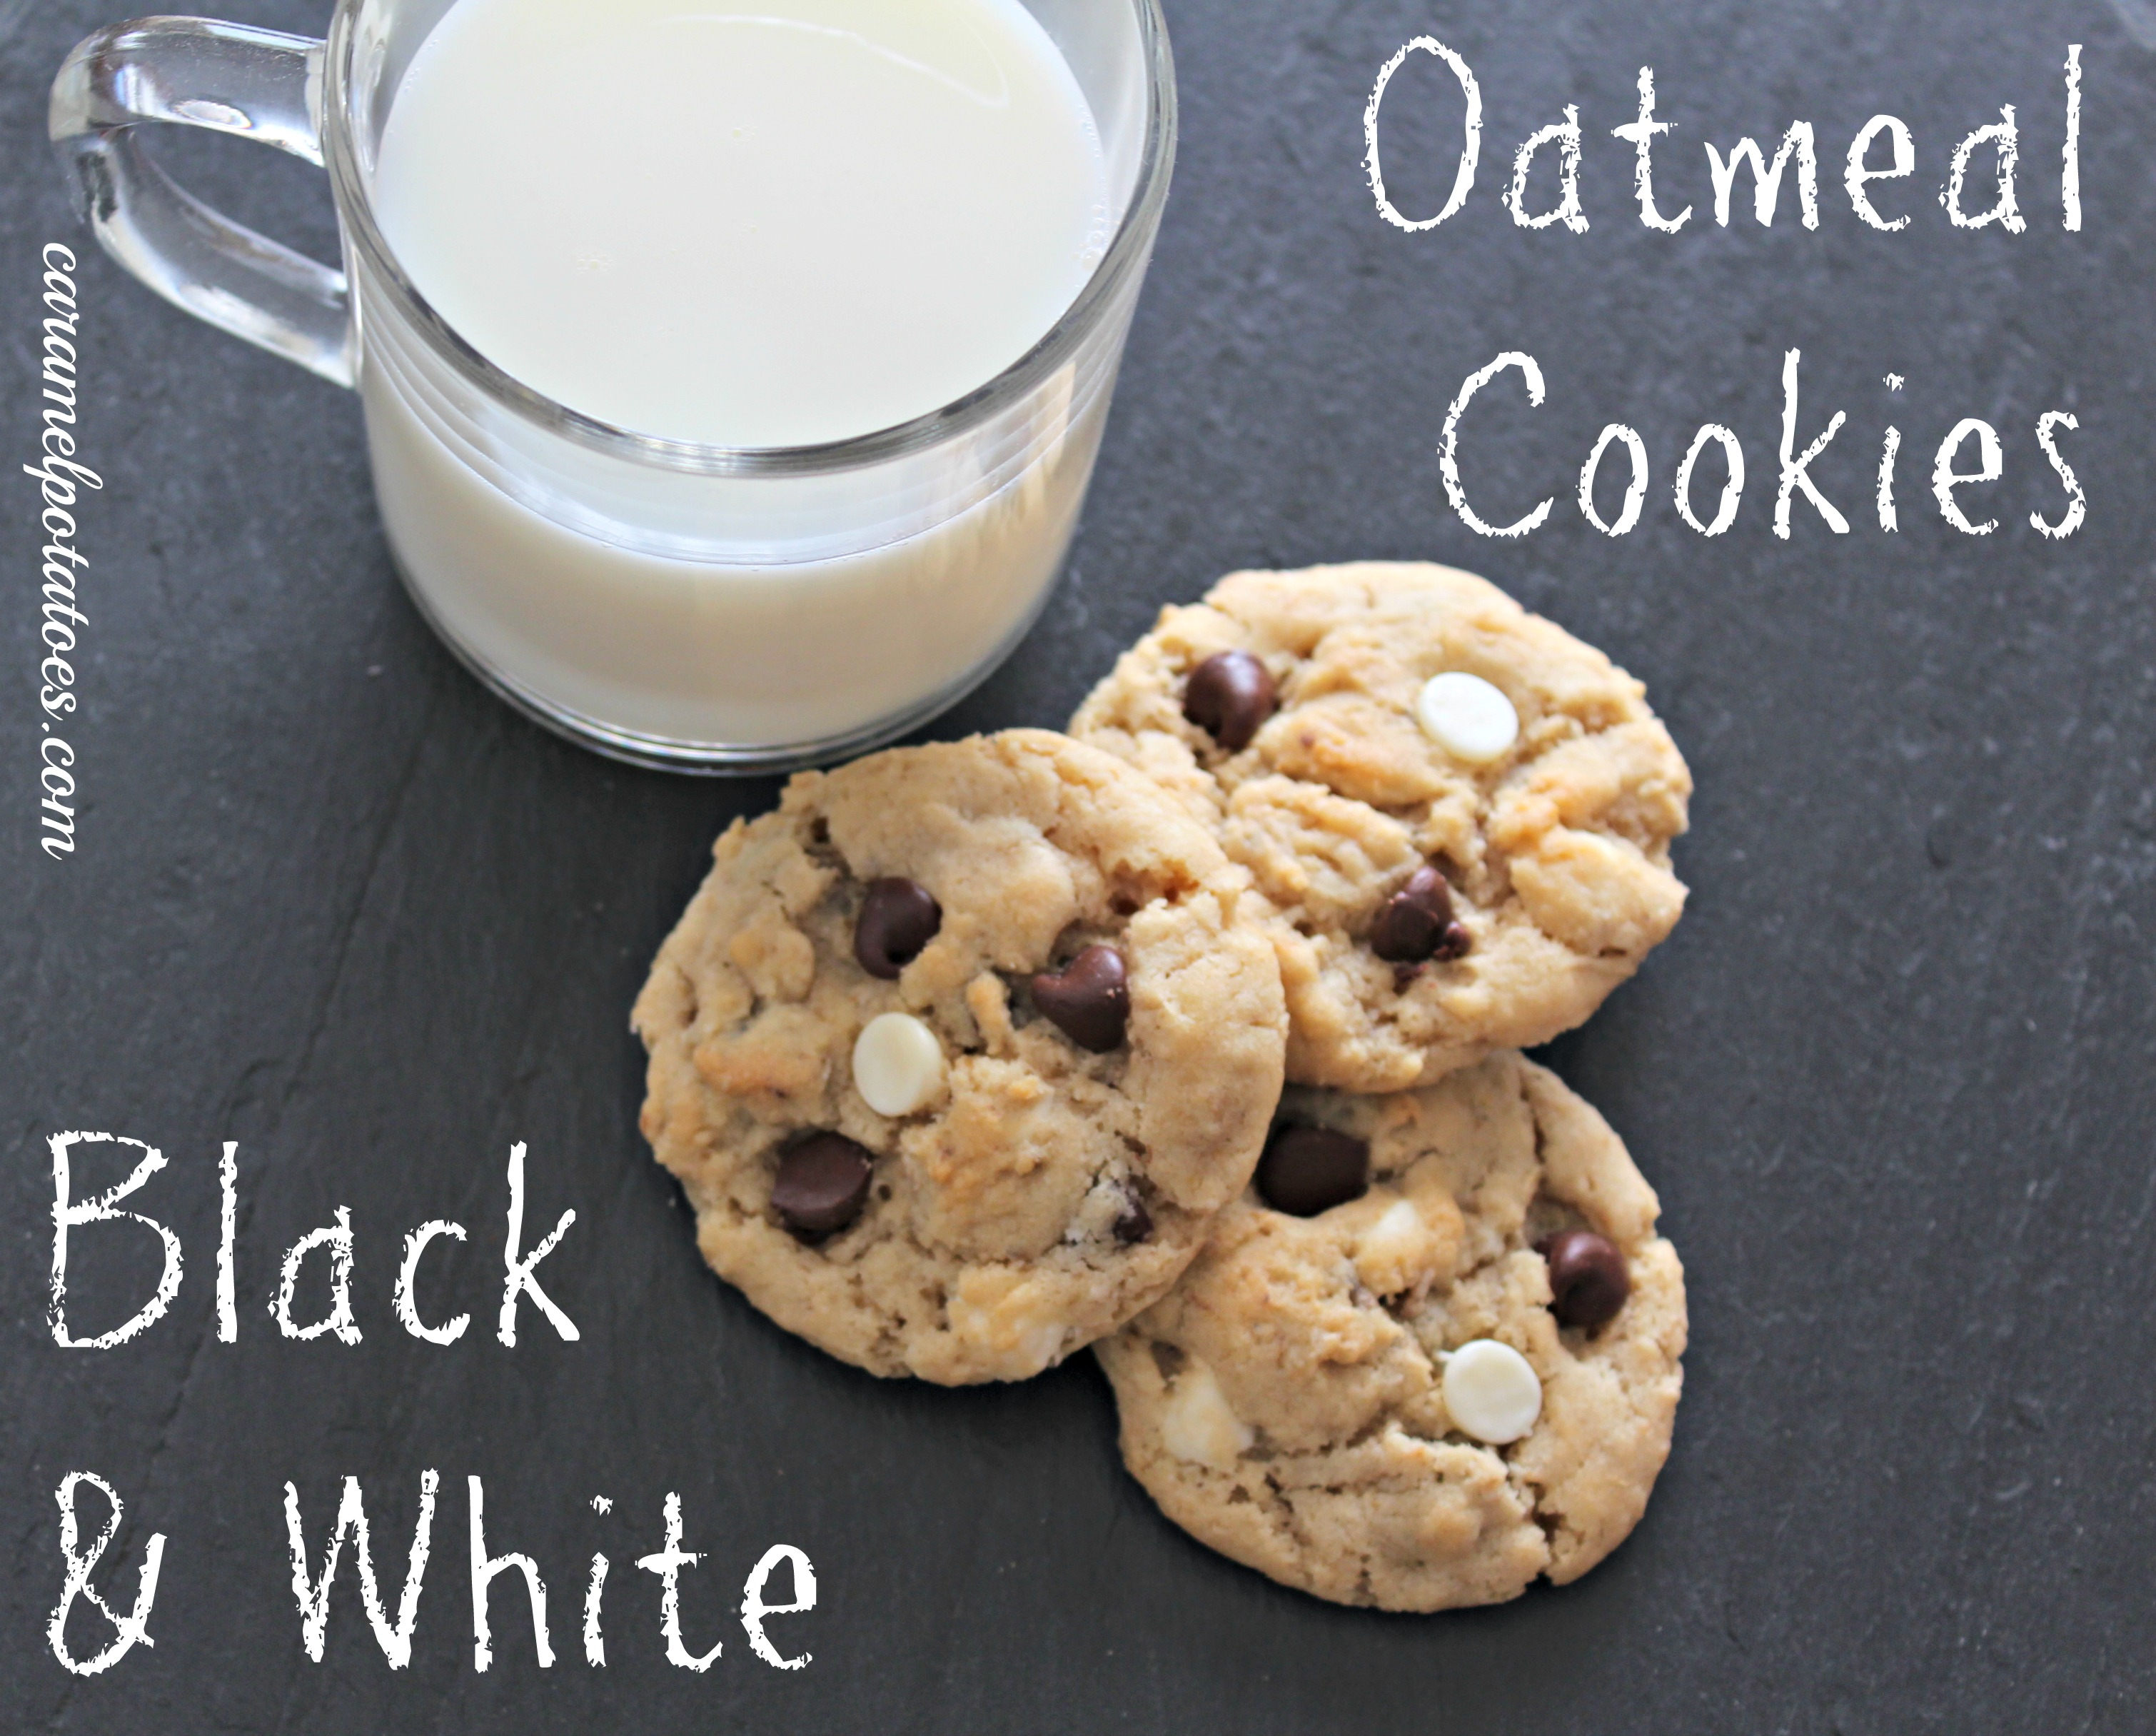 Black And White Butter Cookies Recipes — Dishmaps